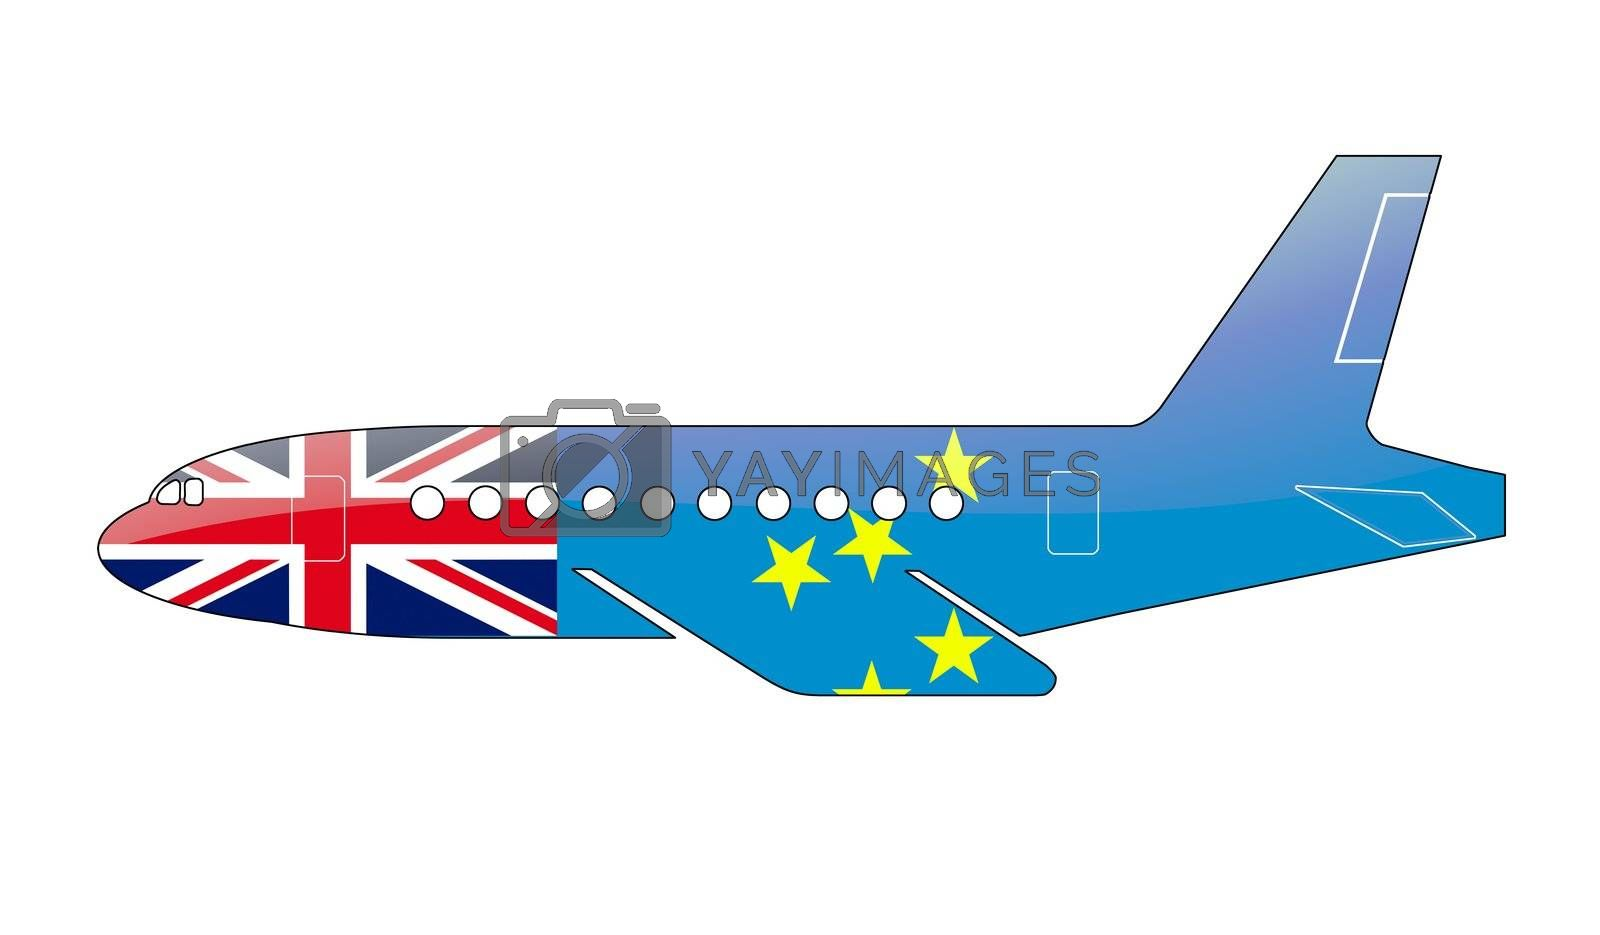 The Tuvalu flag painted on the silhouette of a aircraft. glossy illustration